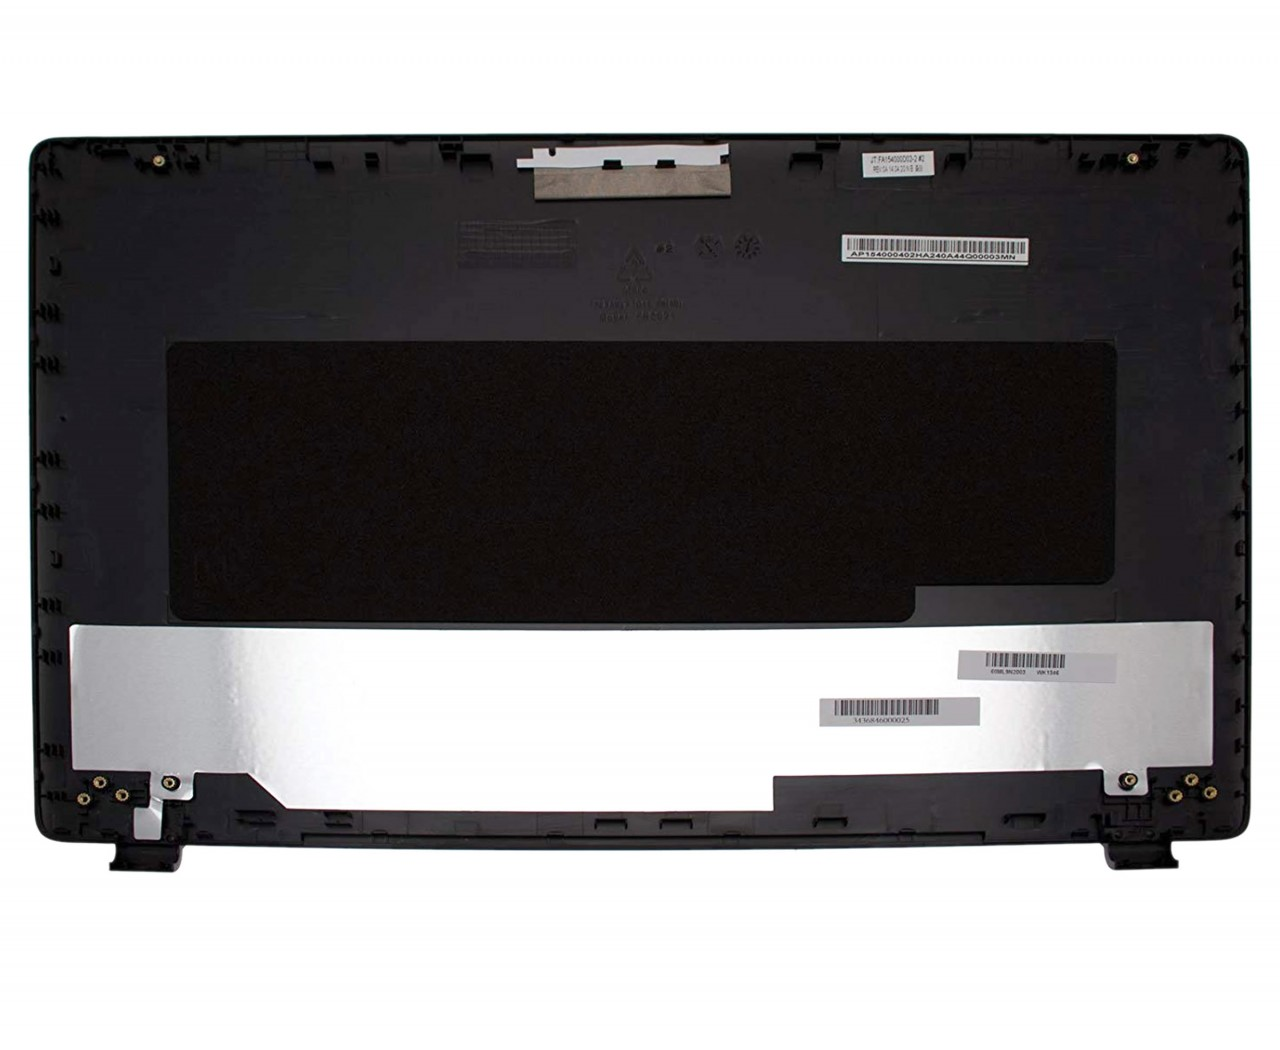 Capac Display BackCover Acer Aspire E5 551G Carcasa Display Neagra imagine